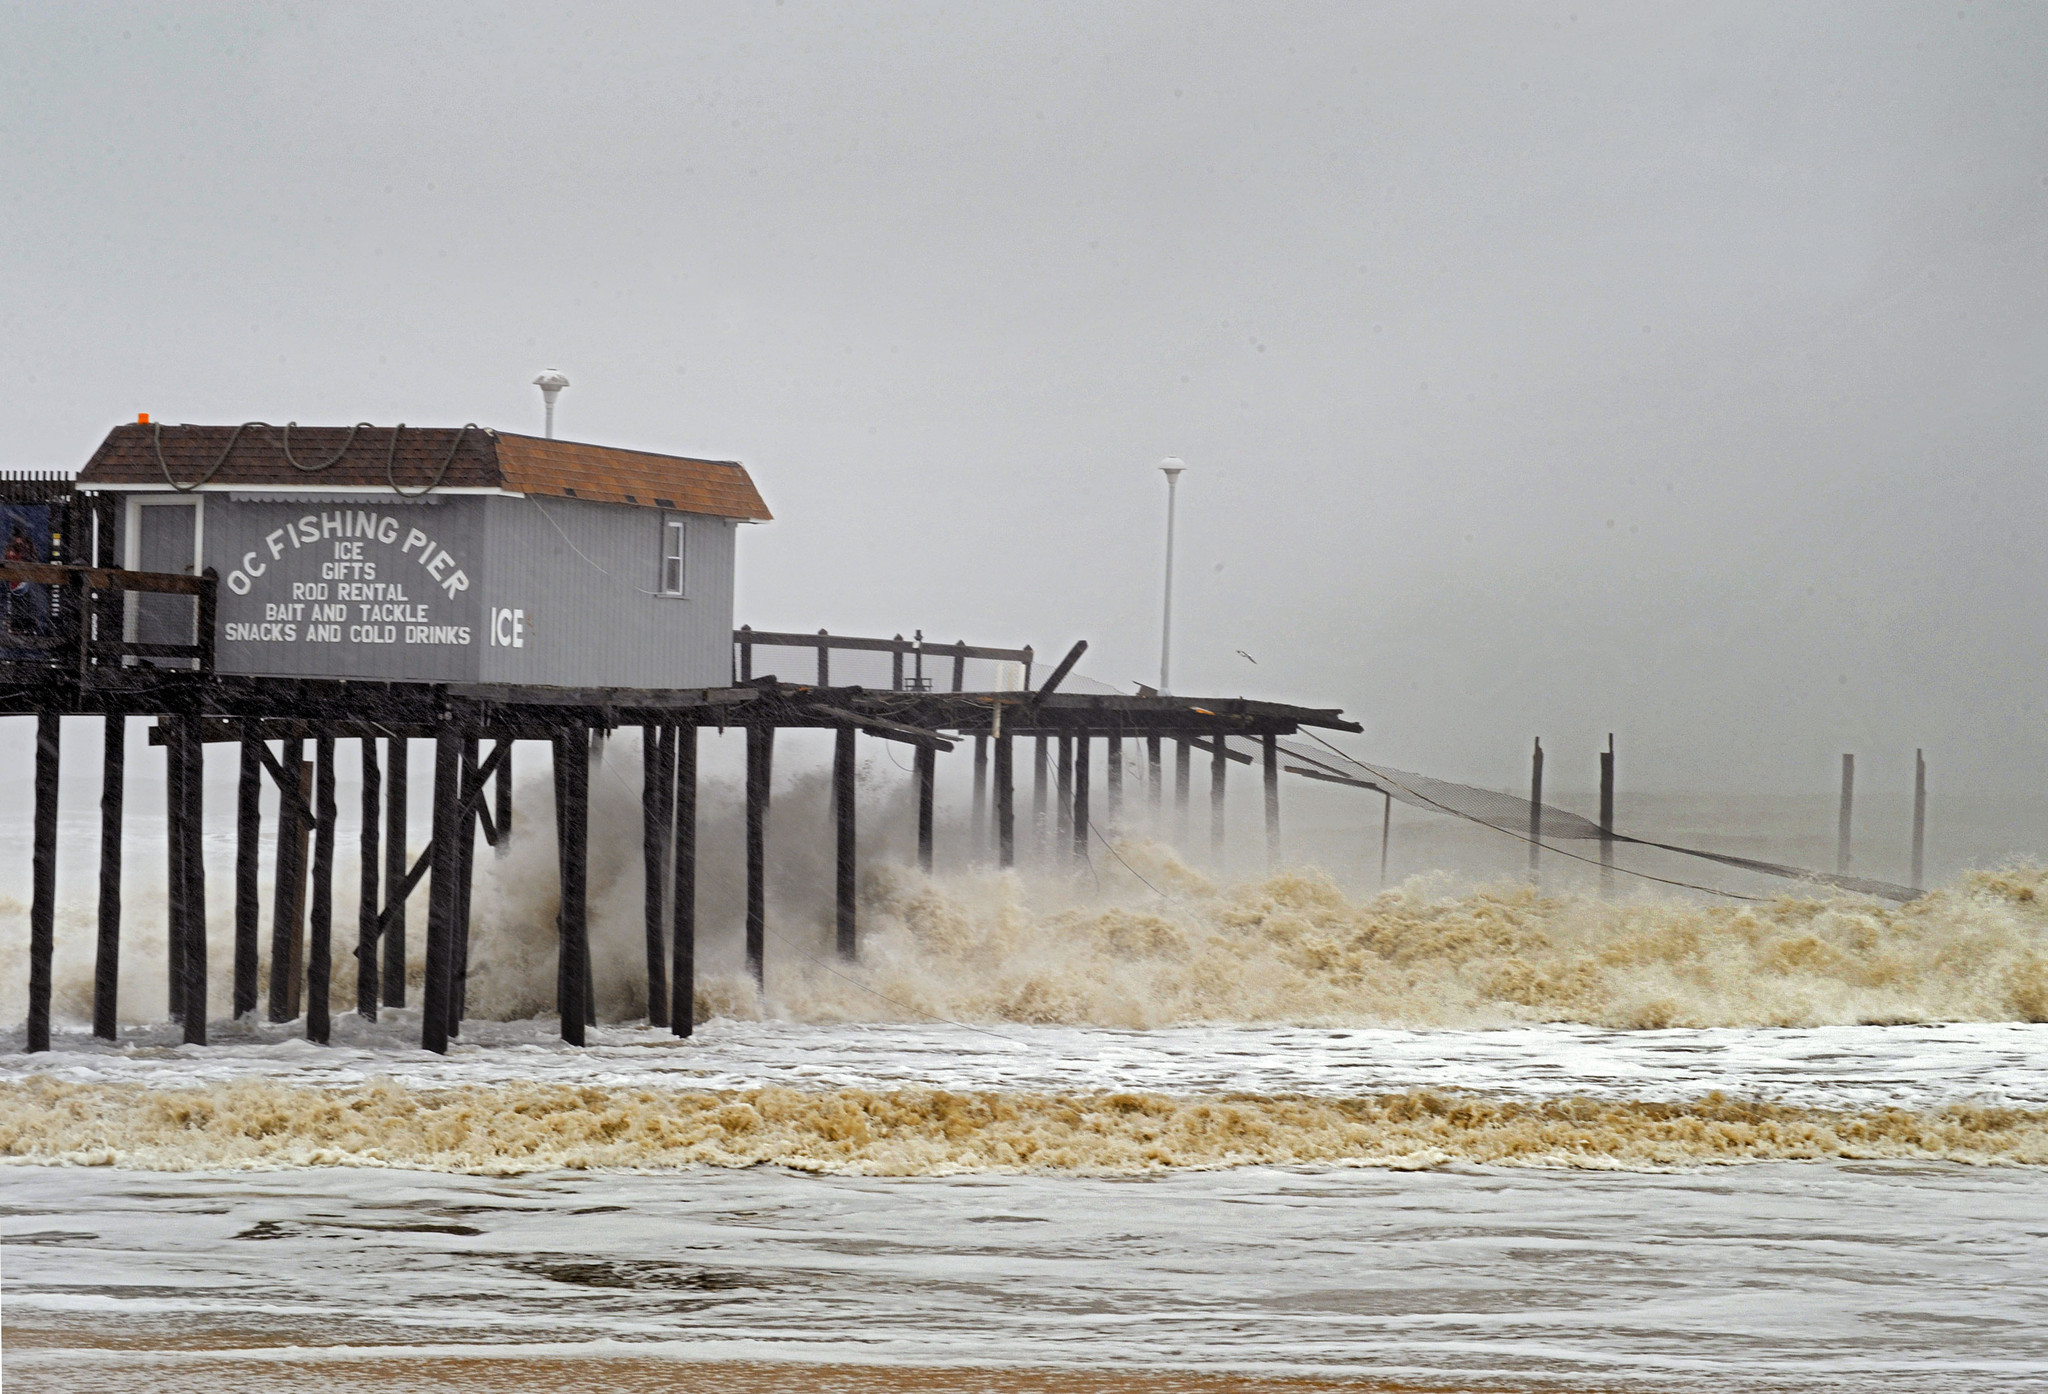 Ocean city pier damaged by winter storm baltimore sun for Oceanic fishing pier